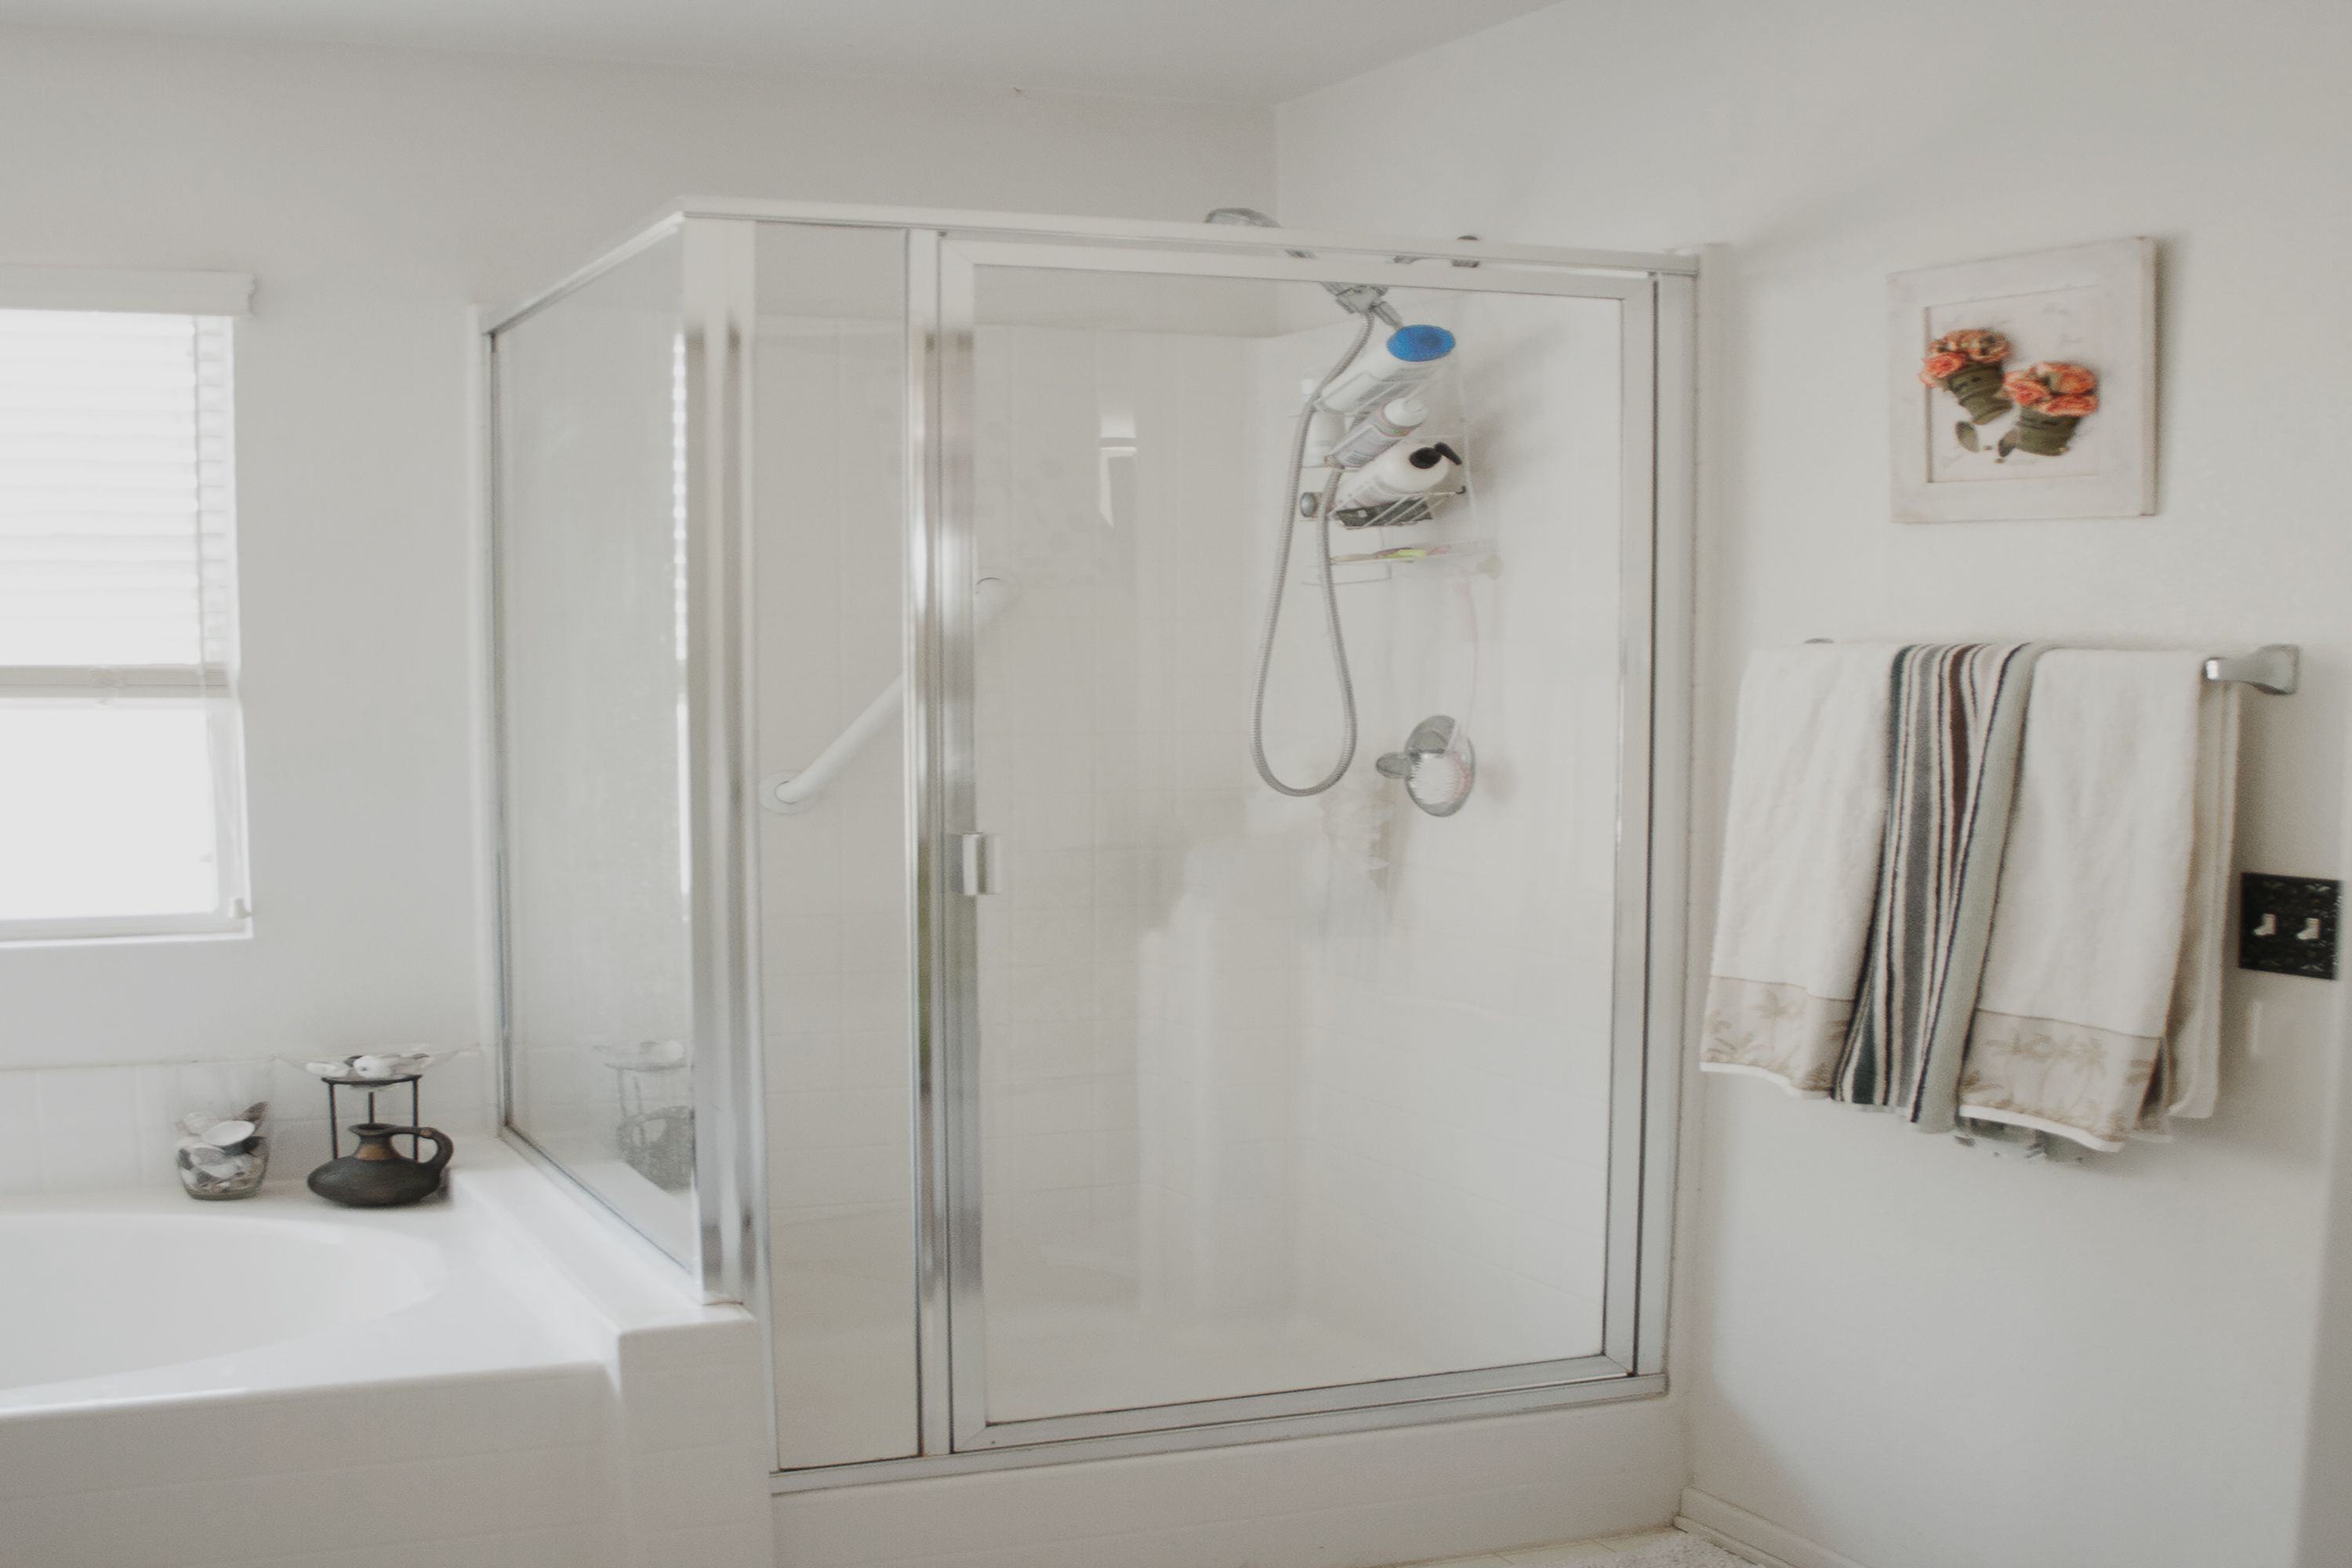 How To Replace A Shower Door Bottom Seal Shower Doors Replace Shower Door Replace Shower